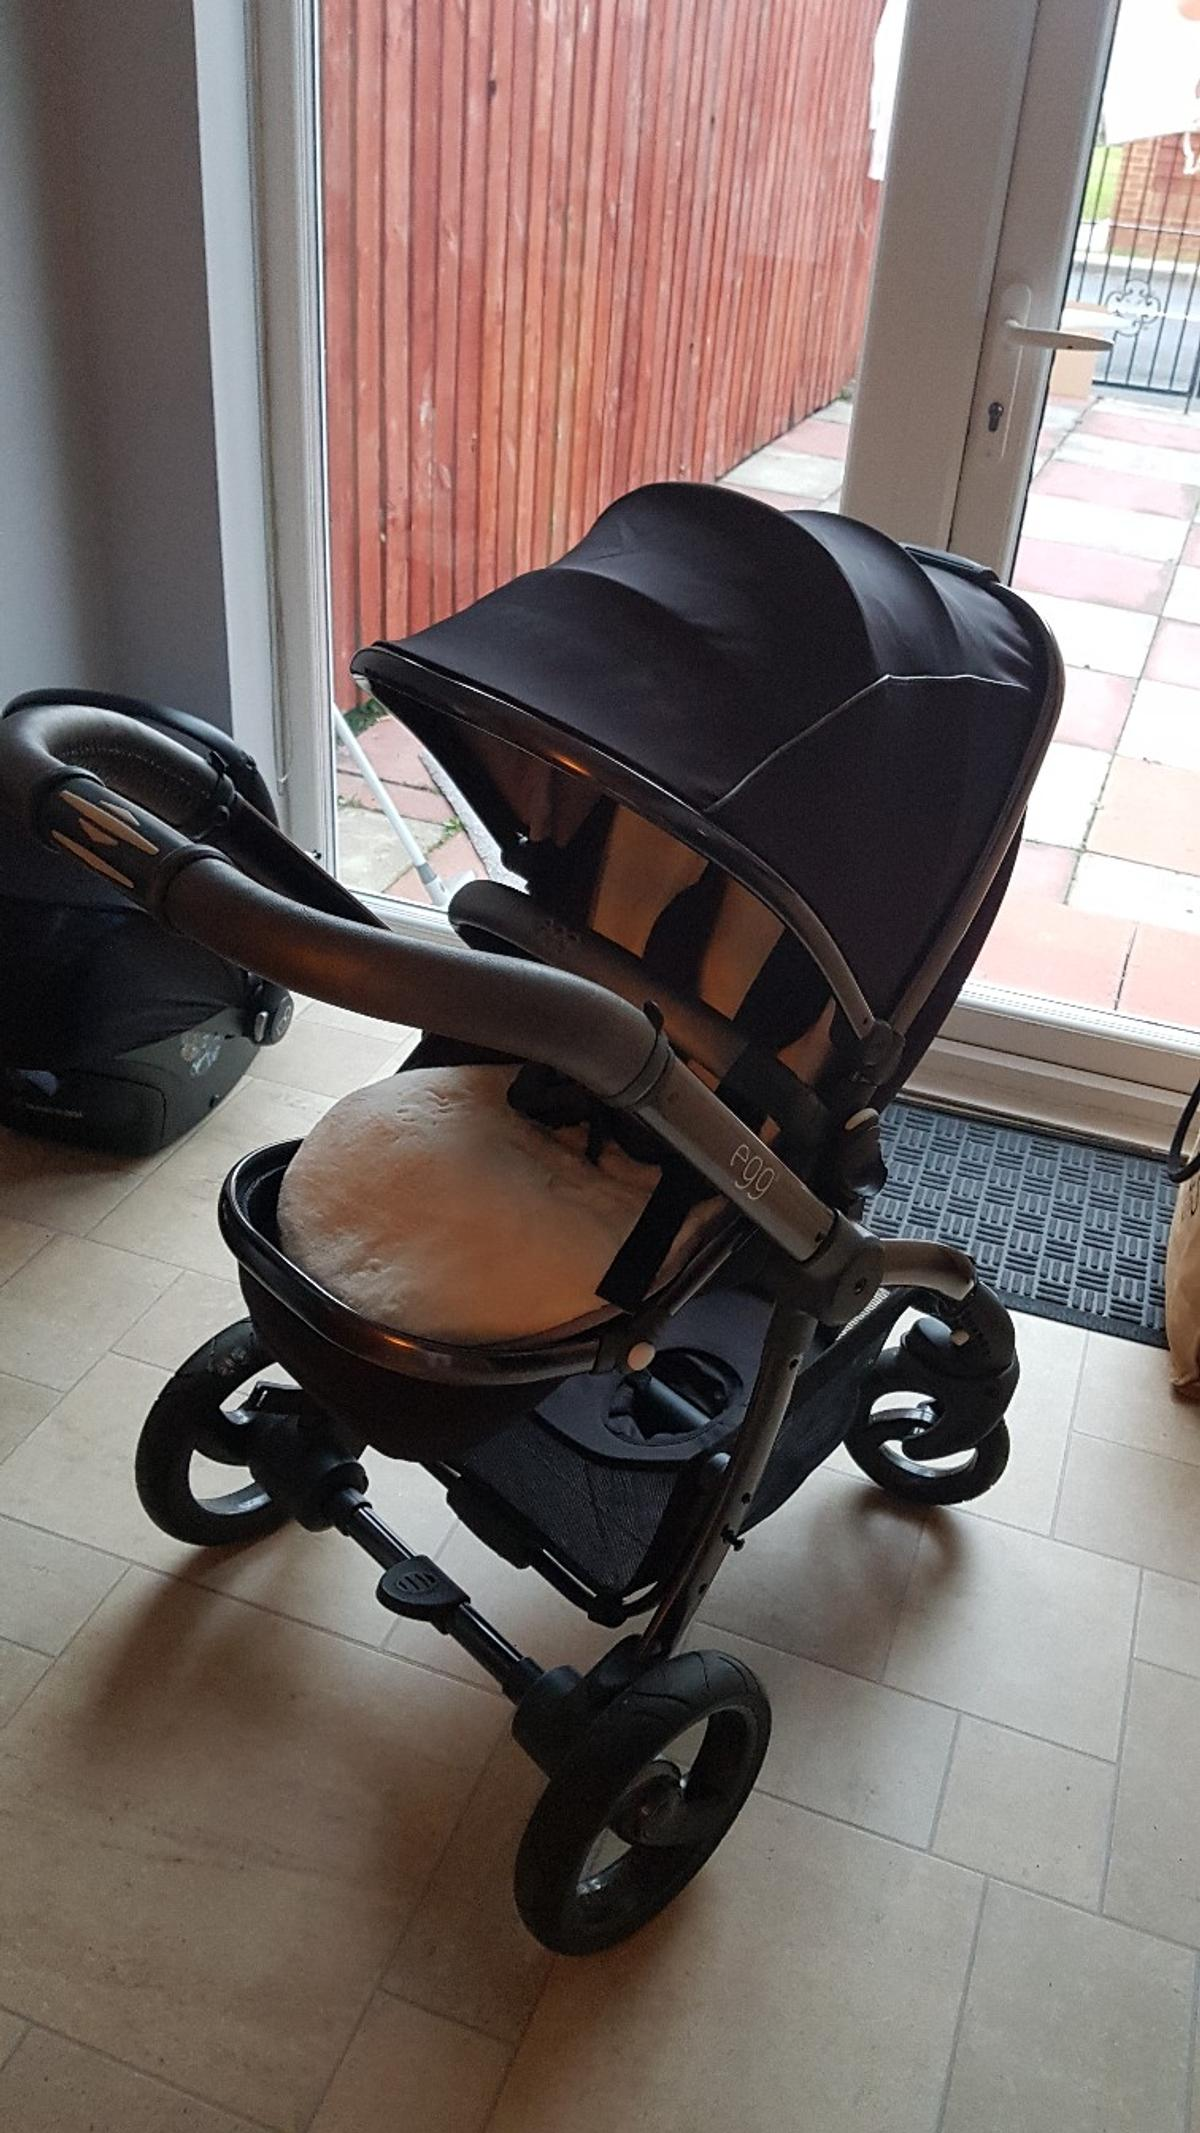 Egg Pram Gunmetal Egg Shadow Black Edition Travel System In Ne32 Tyneside For